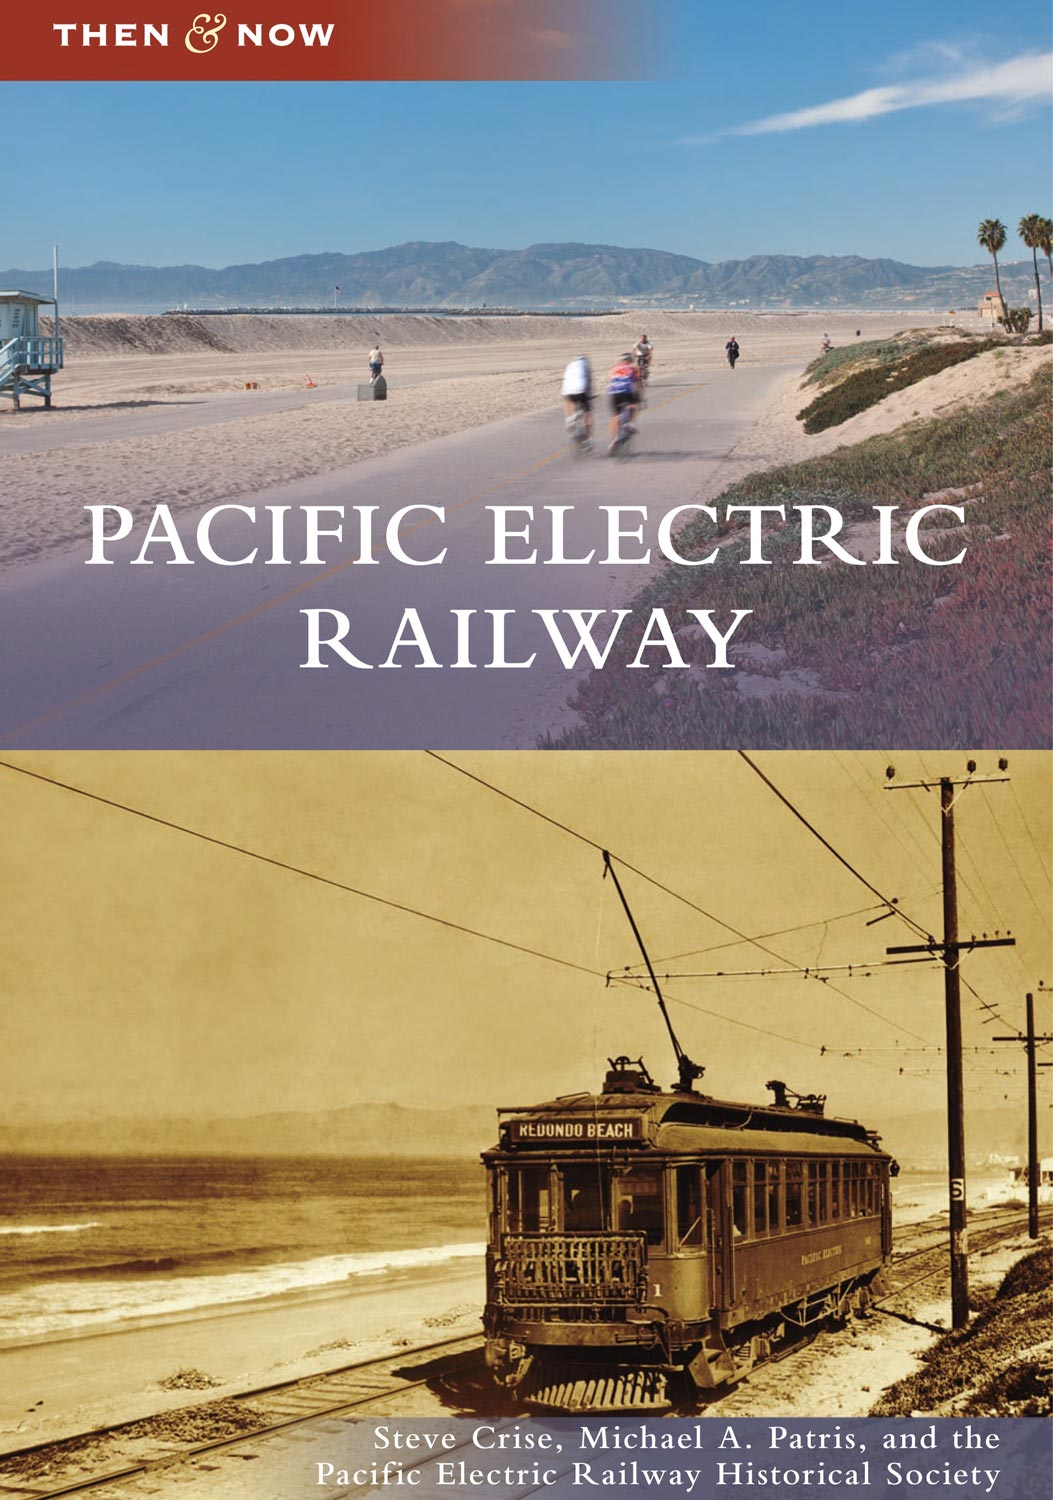 Pacific Electric Railway, Then & Now, by Steve Crise and Michael Patris